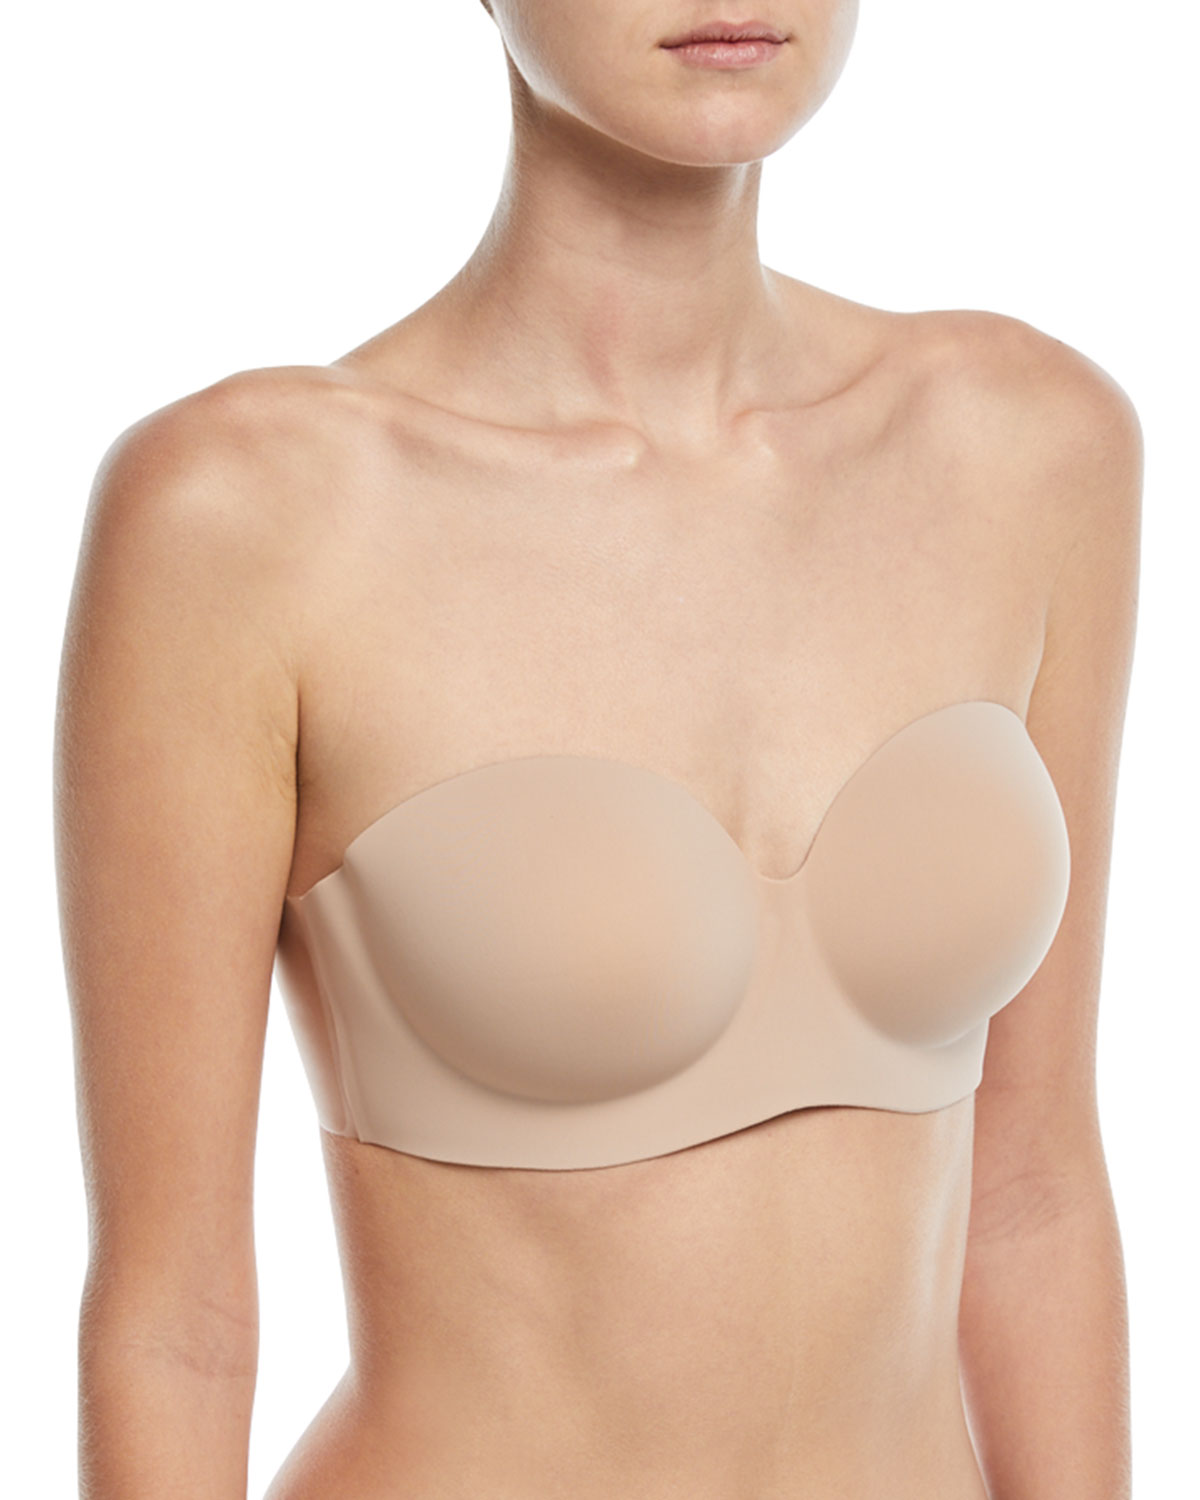 be207ee65 Fashion Forms Voluptuous Backless Strapless Bra